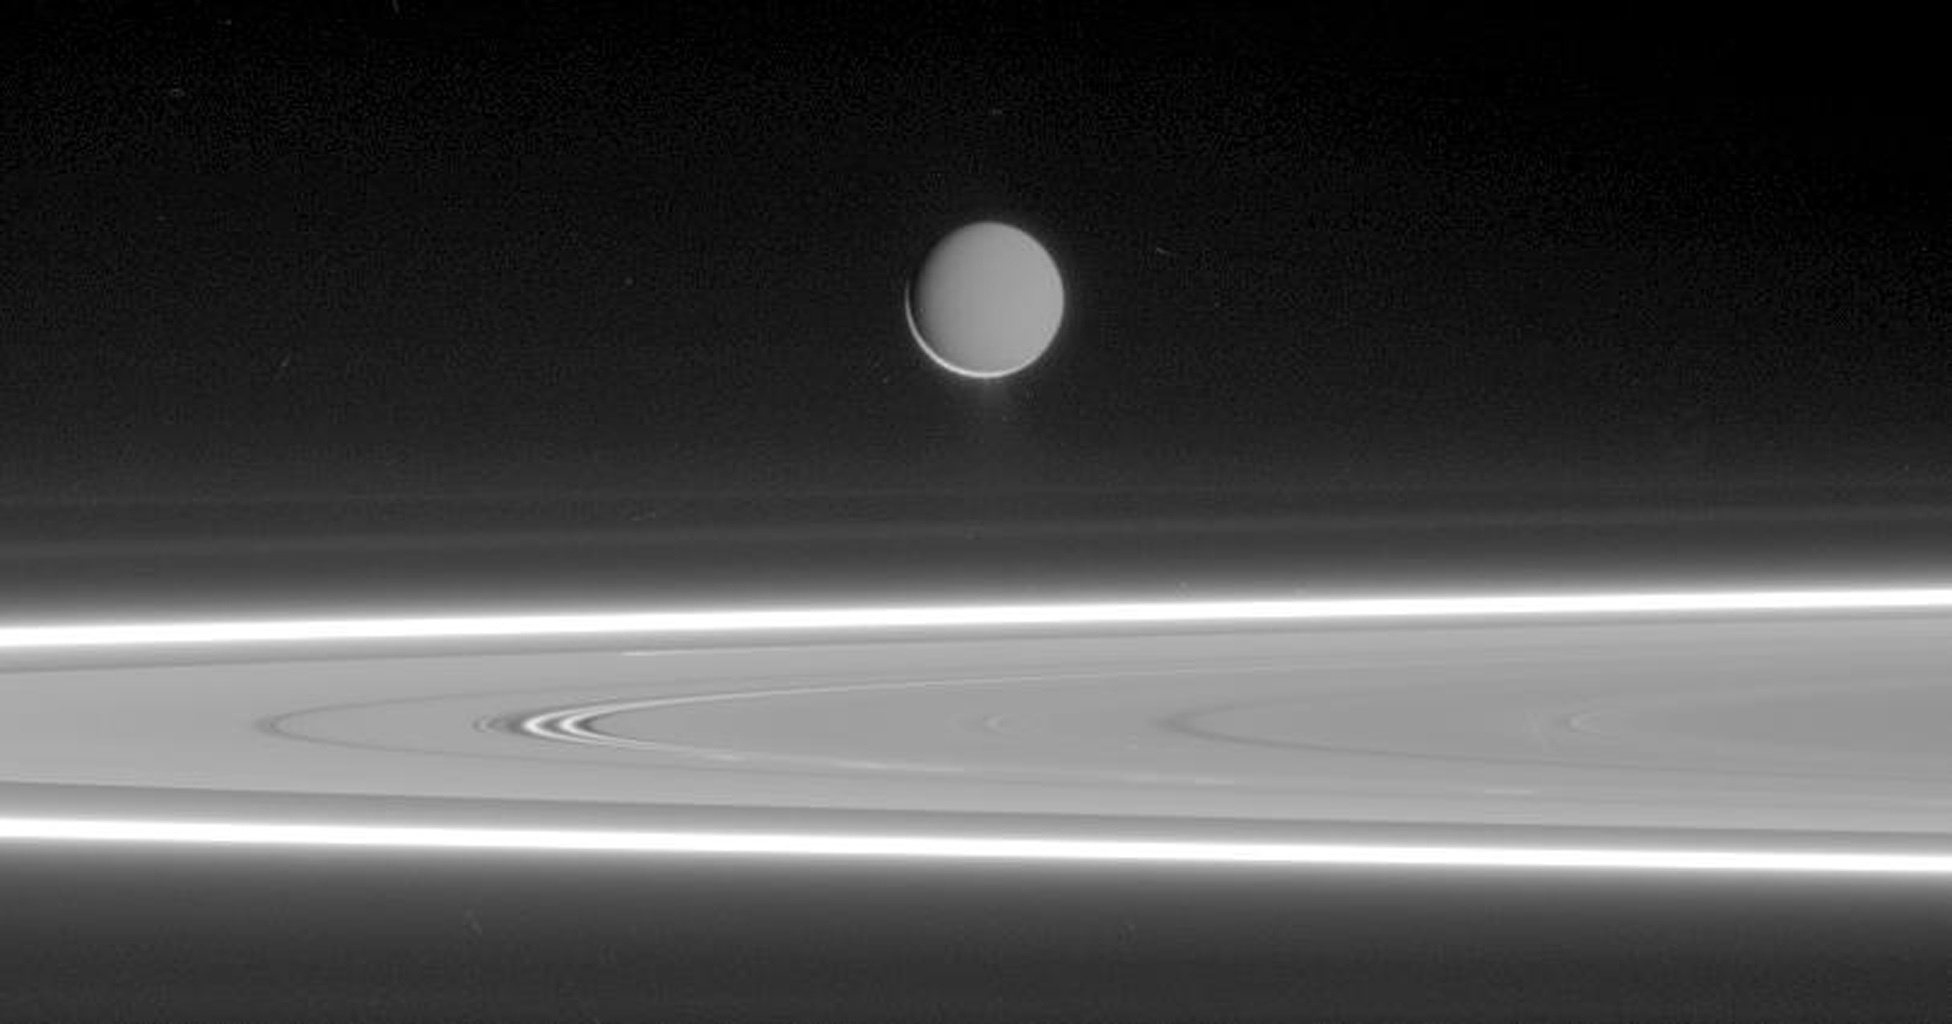 Lit by reflected light from Saturn, Enceladus appears to hover above the gleaming rings, its well-defined ice particle jets spraying a continuous hail of tiny ice grains as seen by NASA's Cassini spacecraft.